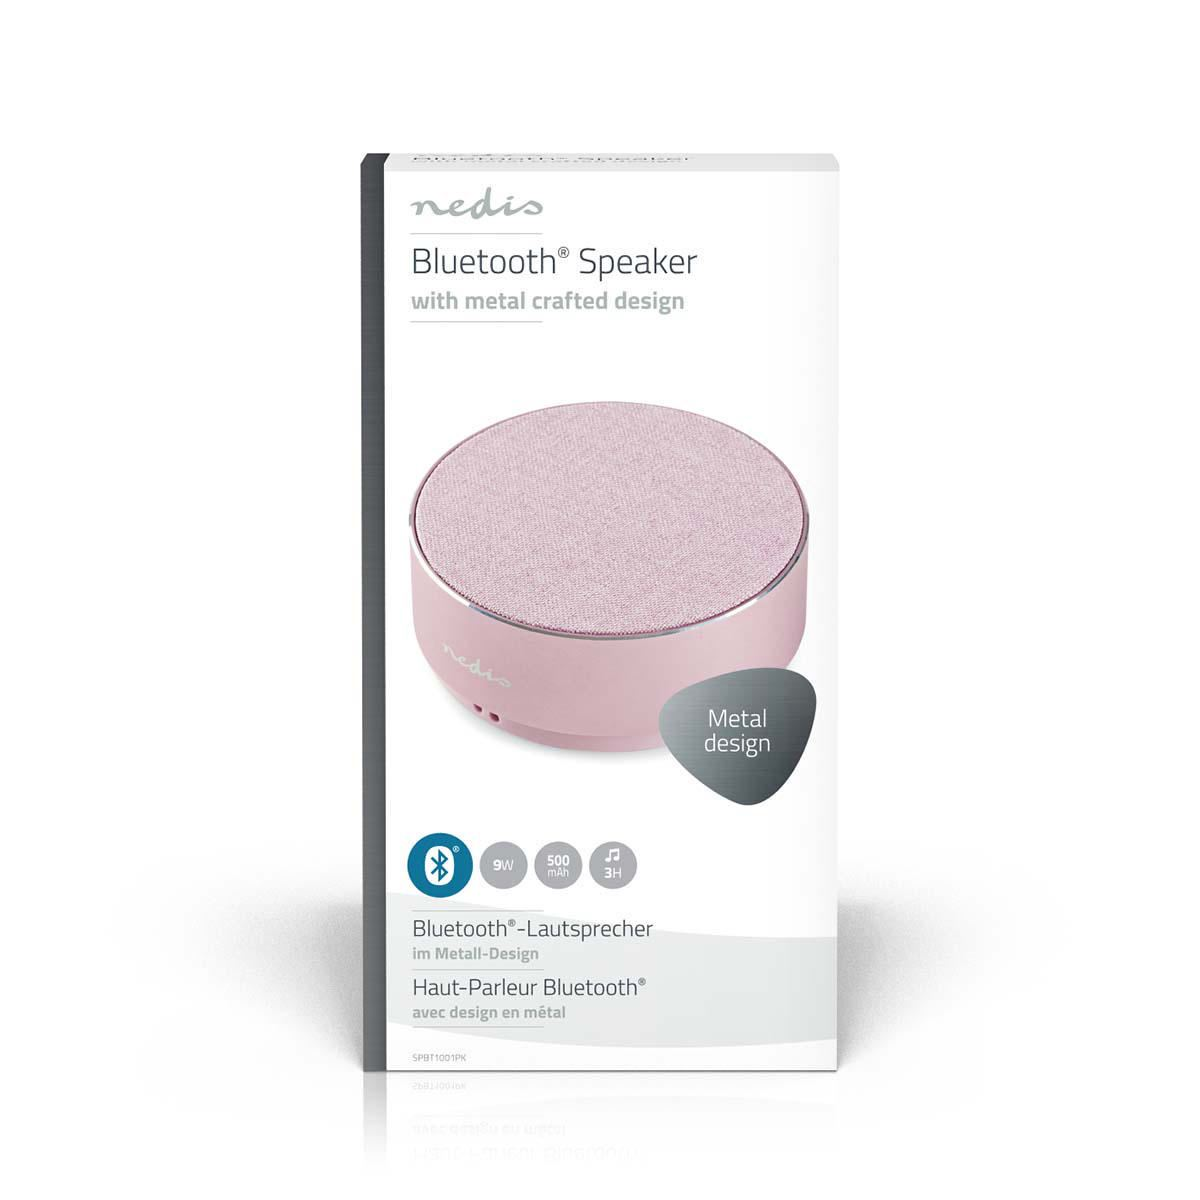 Altavoz-Bluetooth-Inalambrico-Portatil-Rosa-Microfono-de-Oro-Rosa-Macbook-PC-Laptop-Tablet